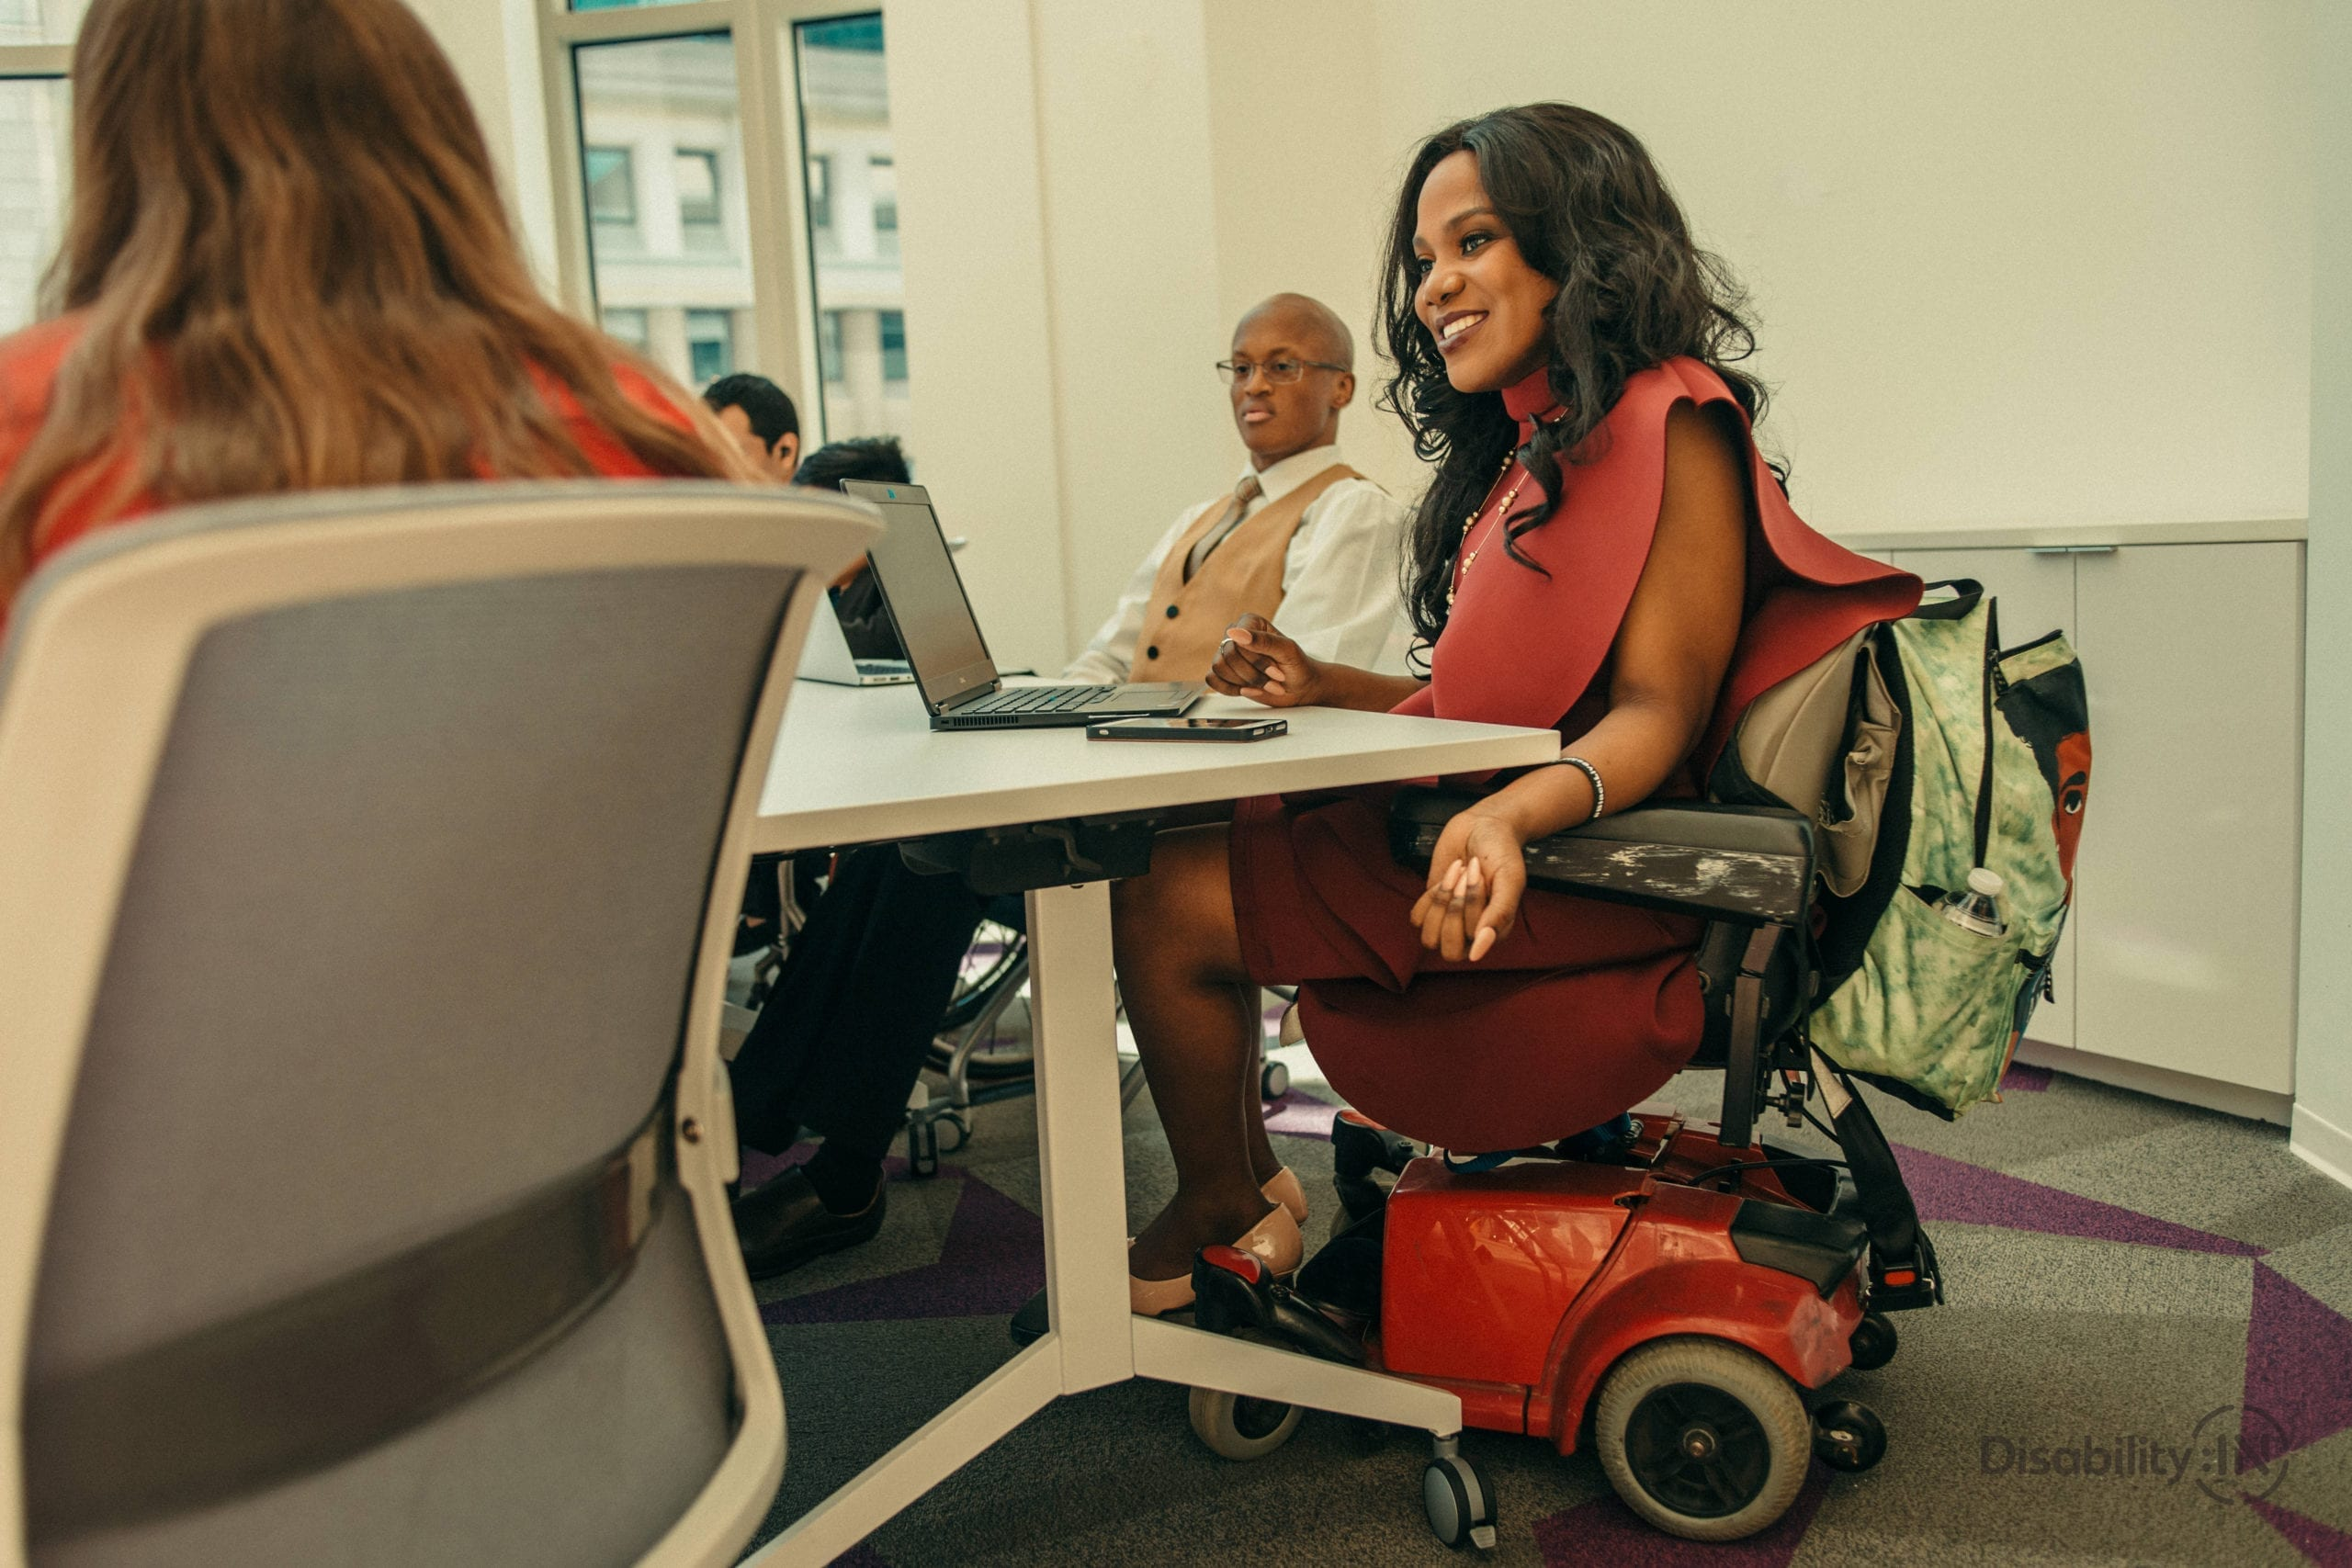 Group of people sit around a board room, focus on women dressed professionally in a motorized wheelchair.